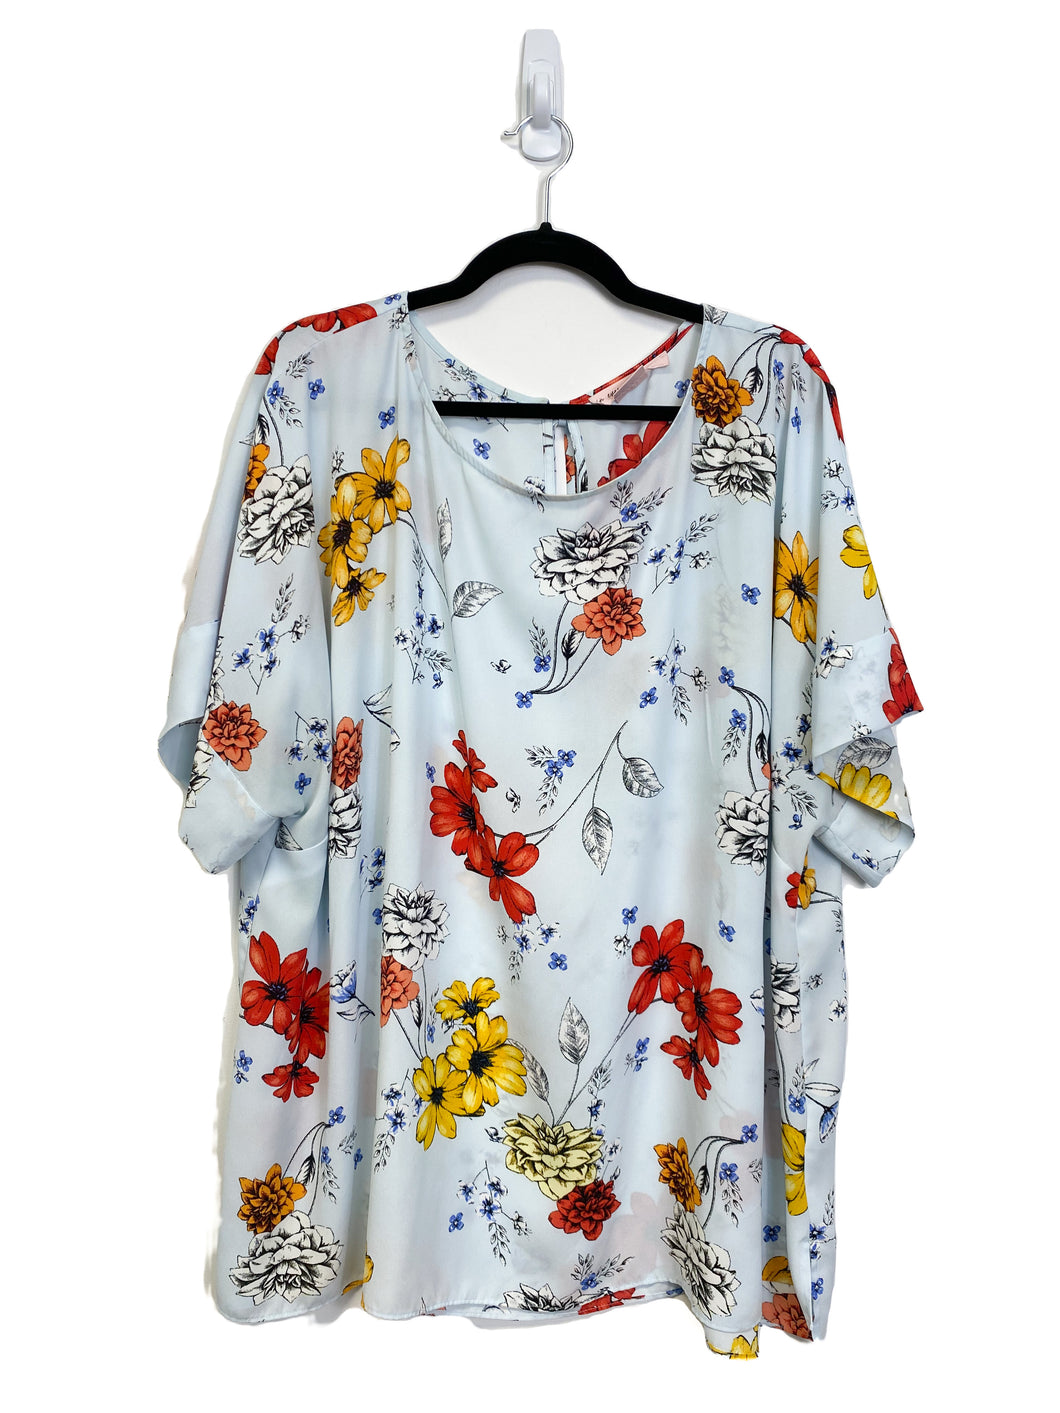 In Every Story Blouse (3X)